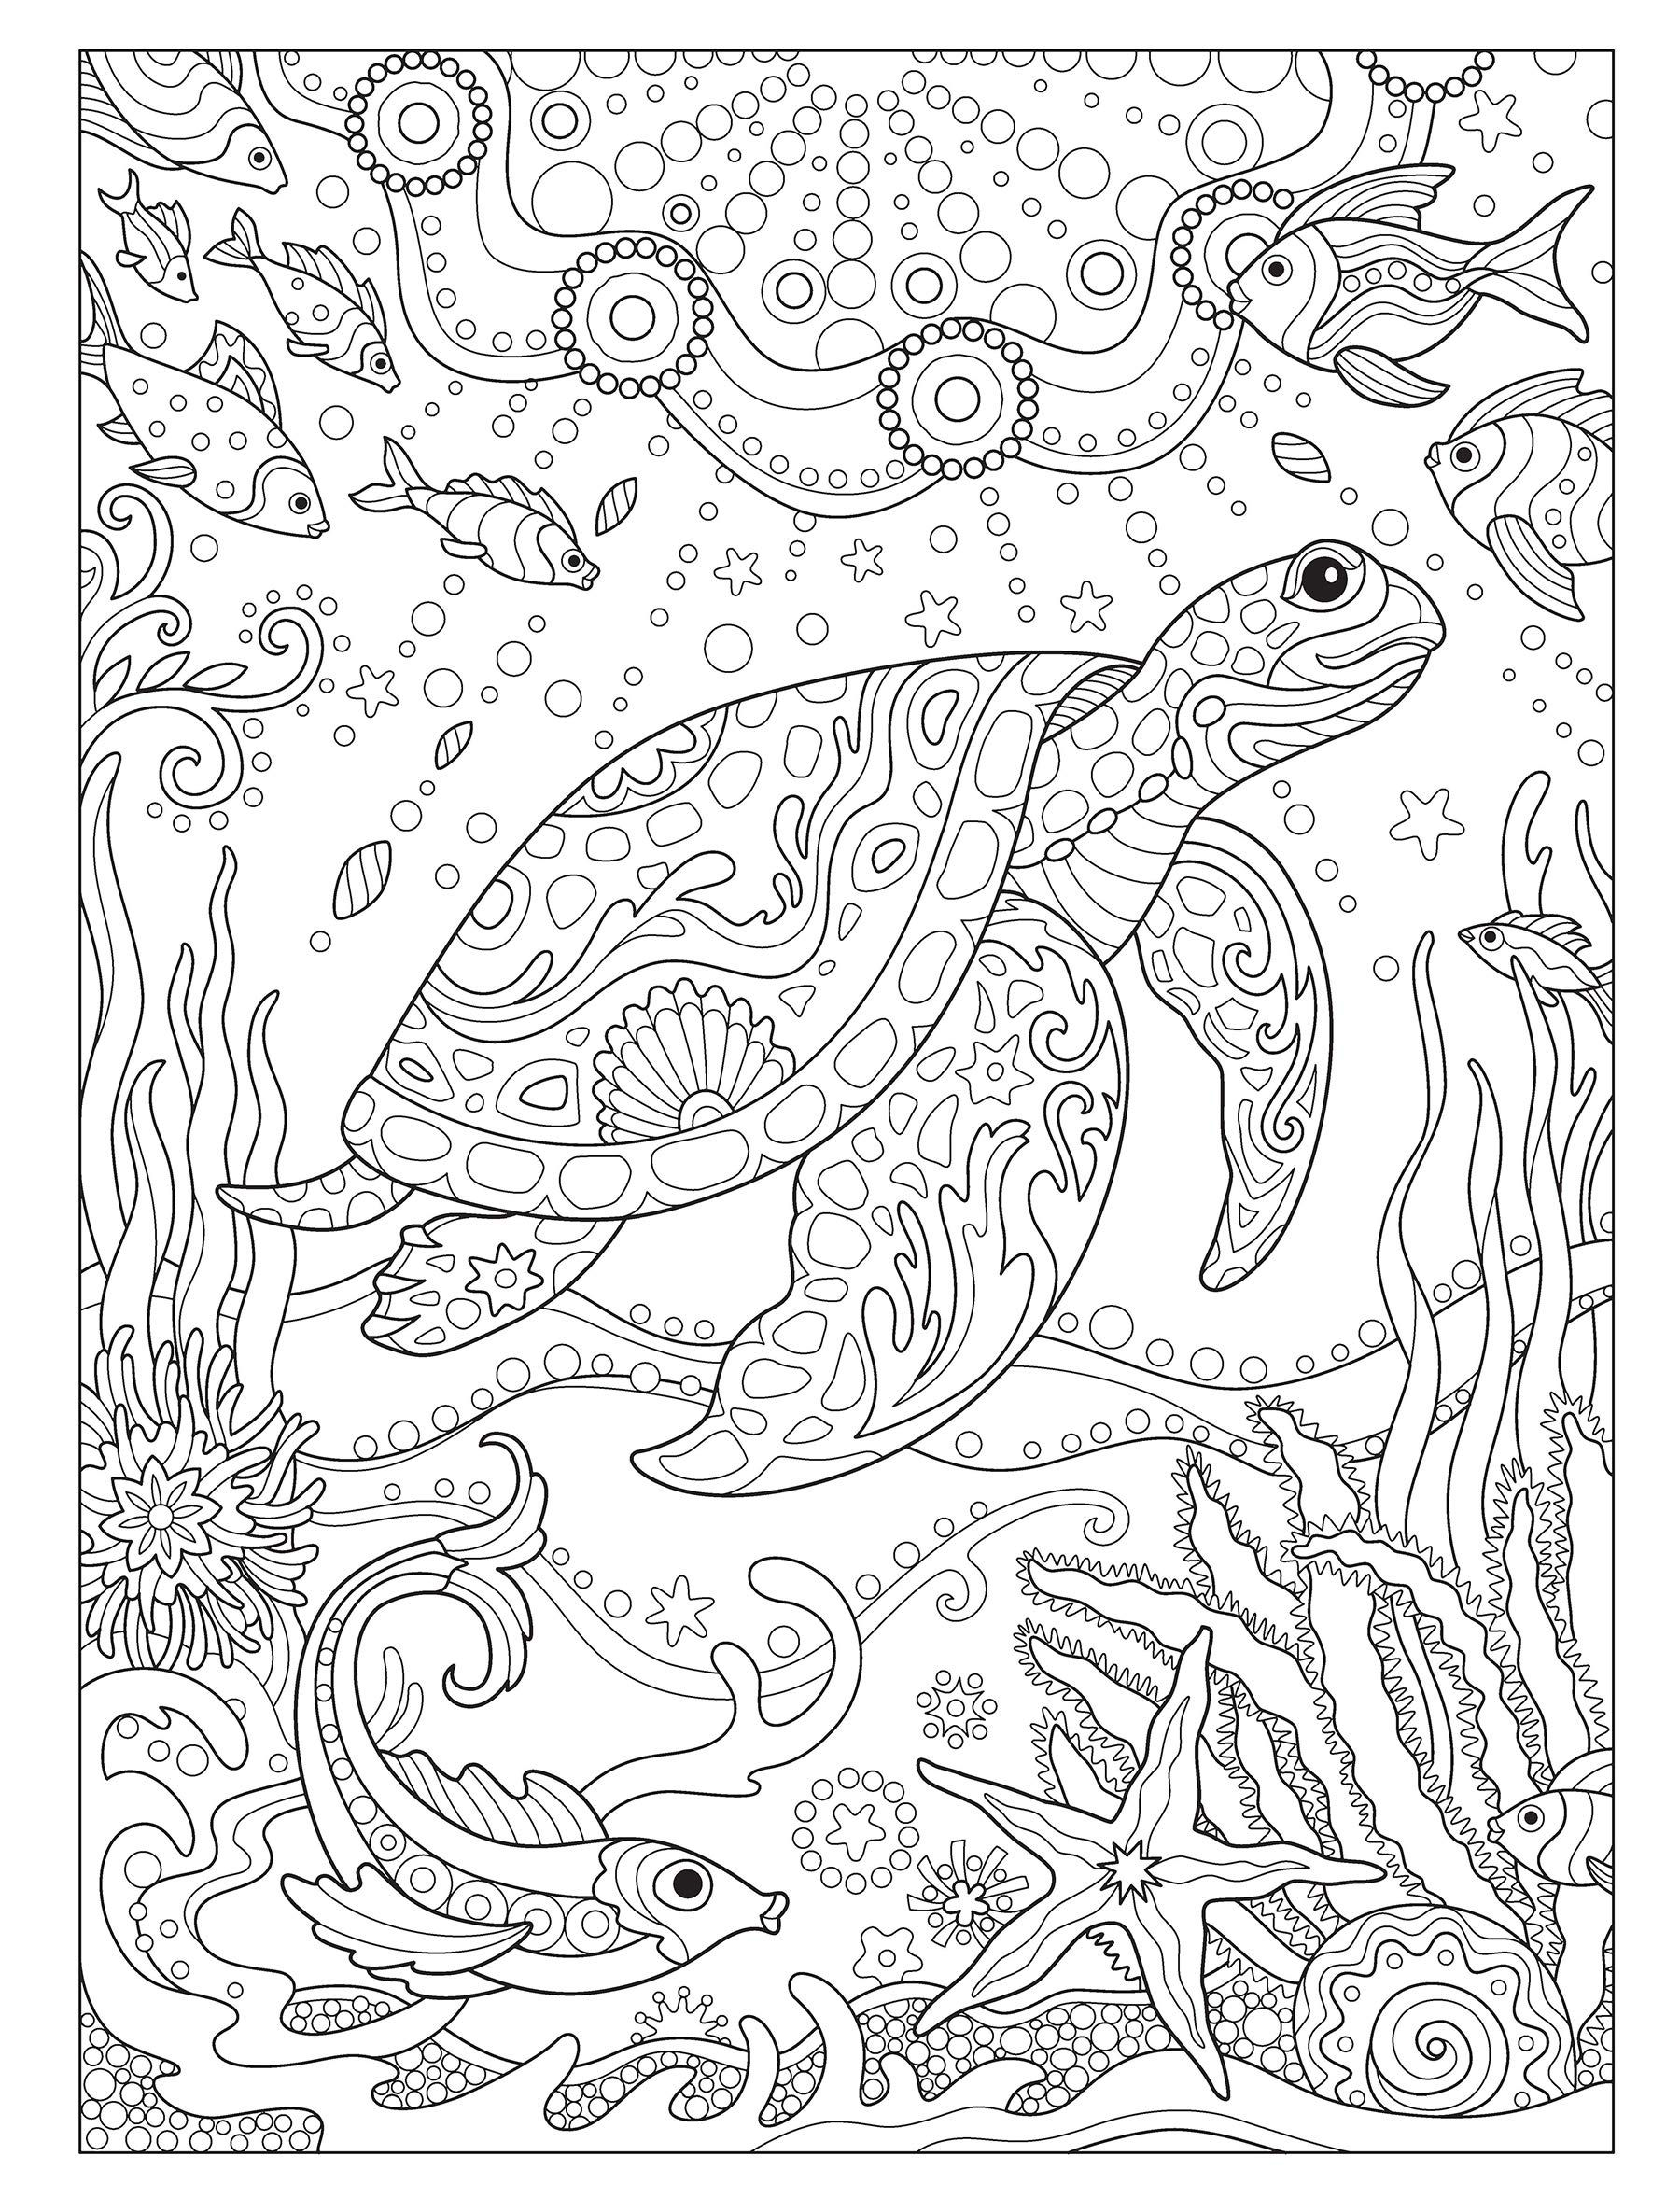 Amazon Com Creative Haven Fanciful Sea Life Coloring Book Adult